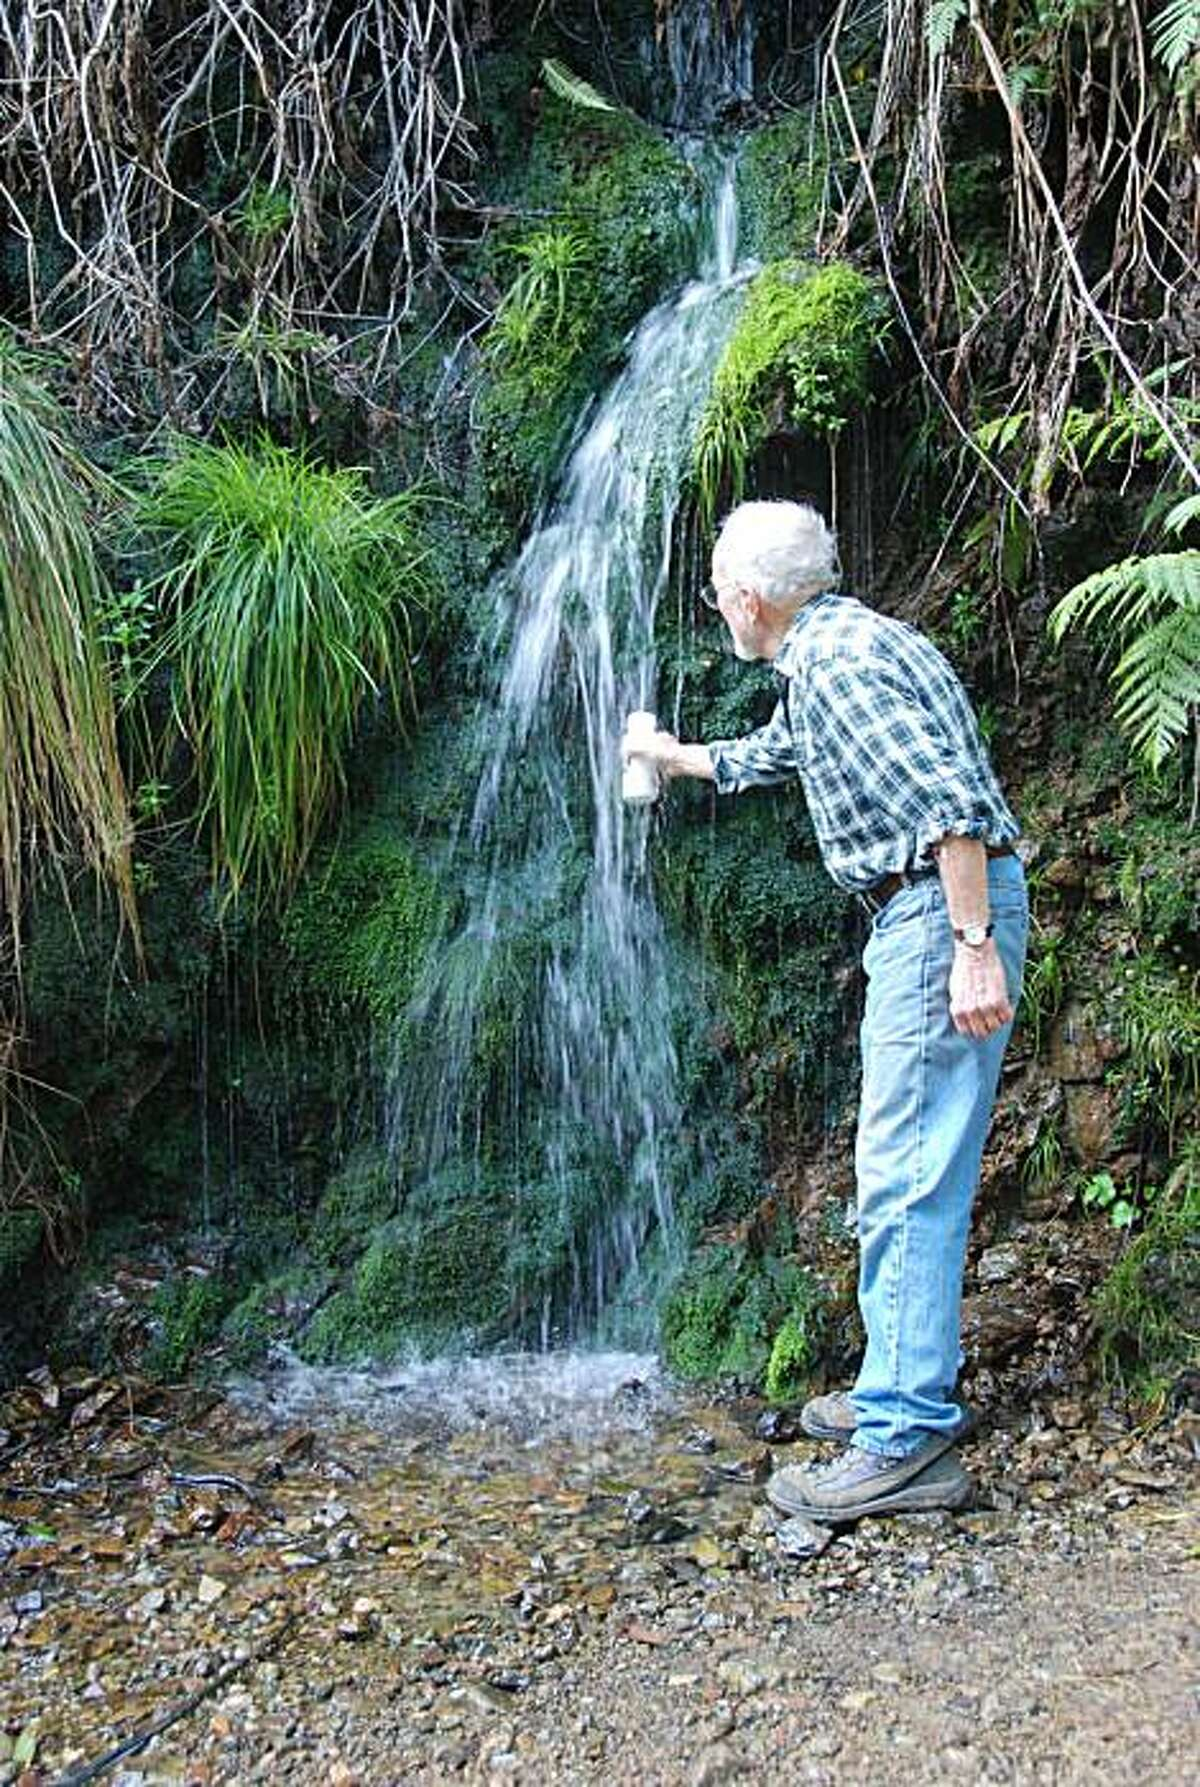 Stopping for fresh water at a natural spring on Mt. Tamalpais.